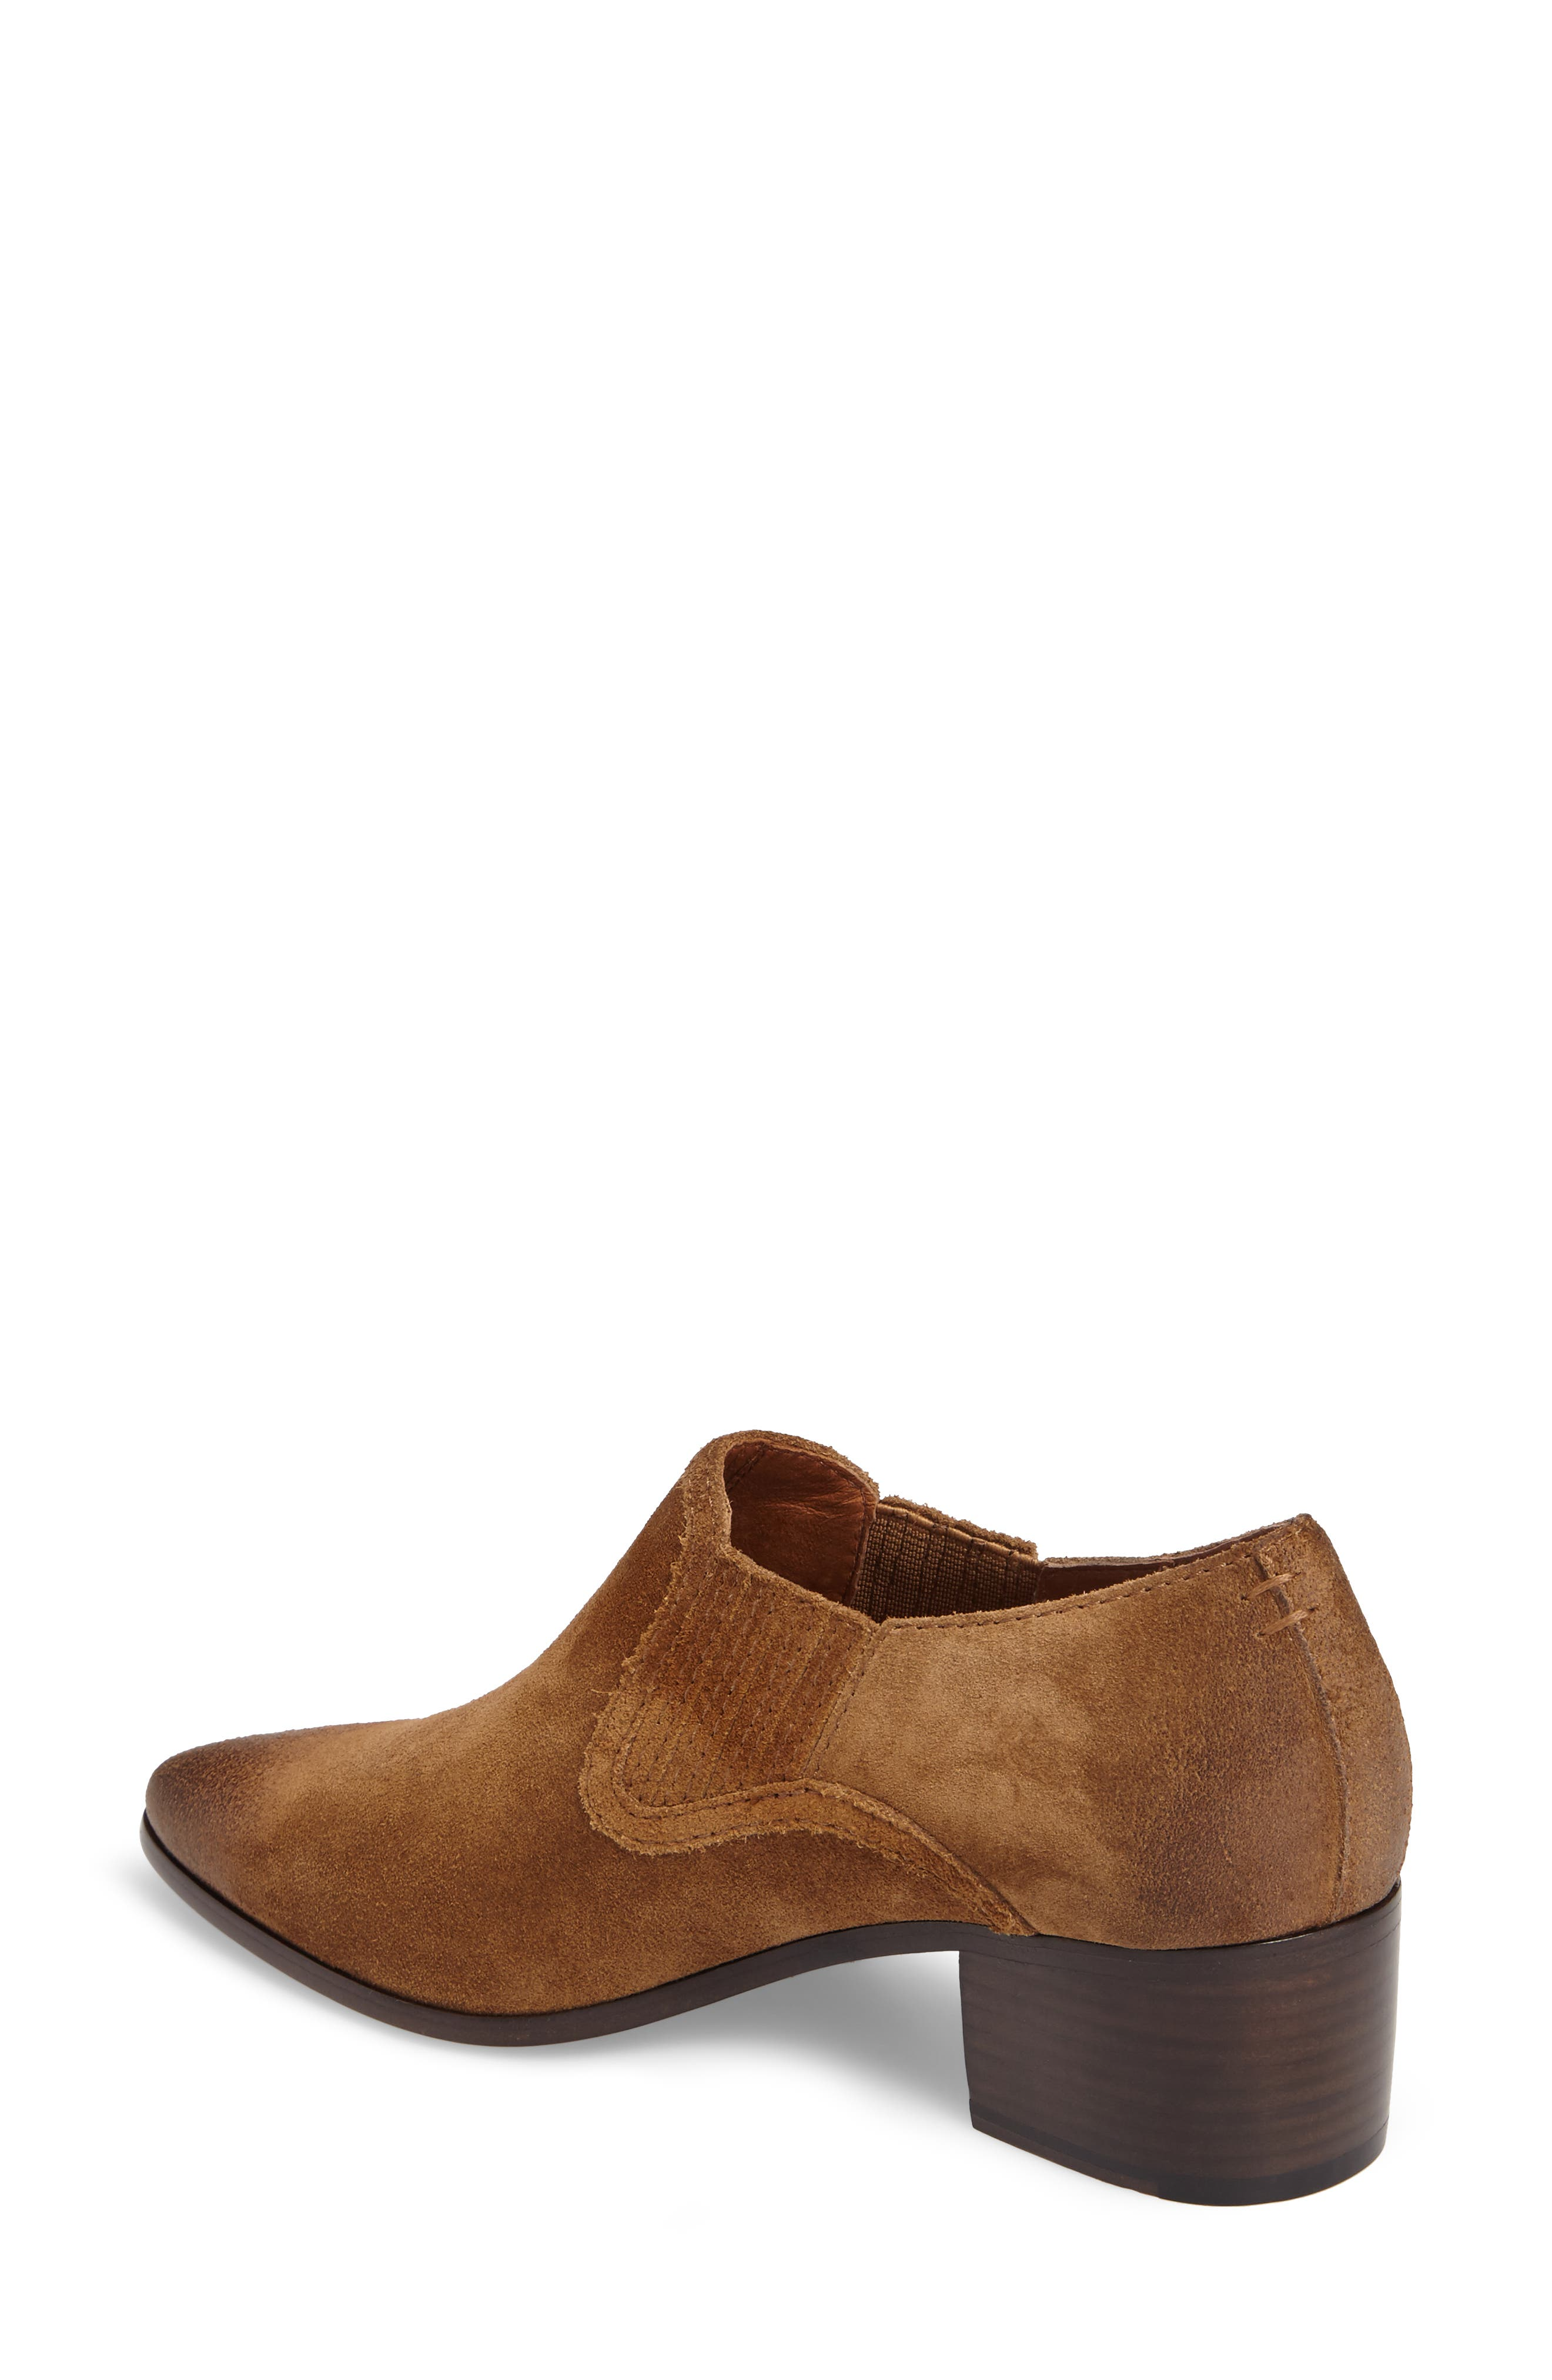 Eleanor Pointy Toe Bootie,                             Alternate thumbnail 2, color,                             Chestnut